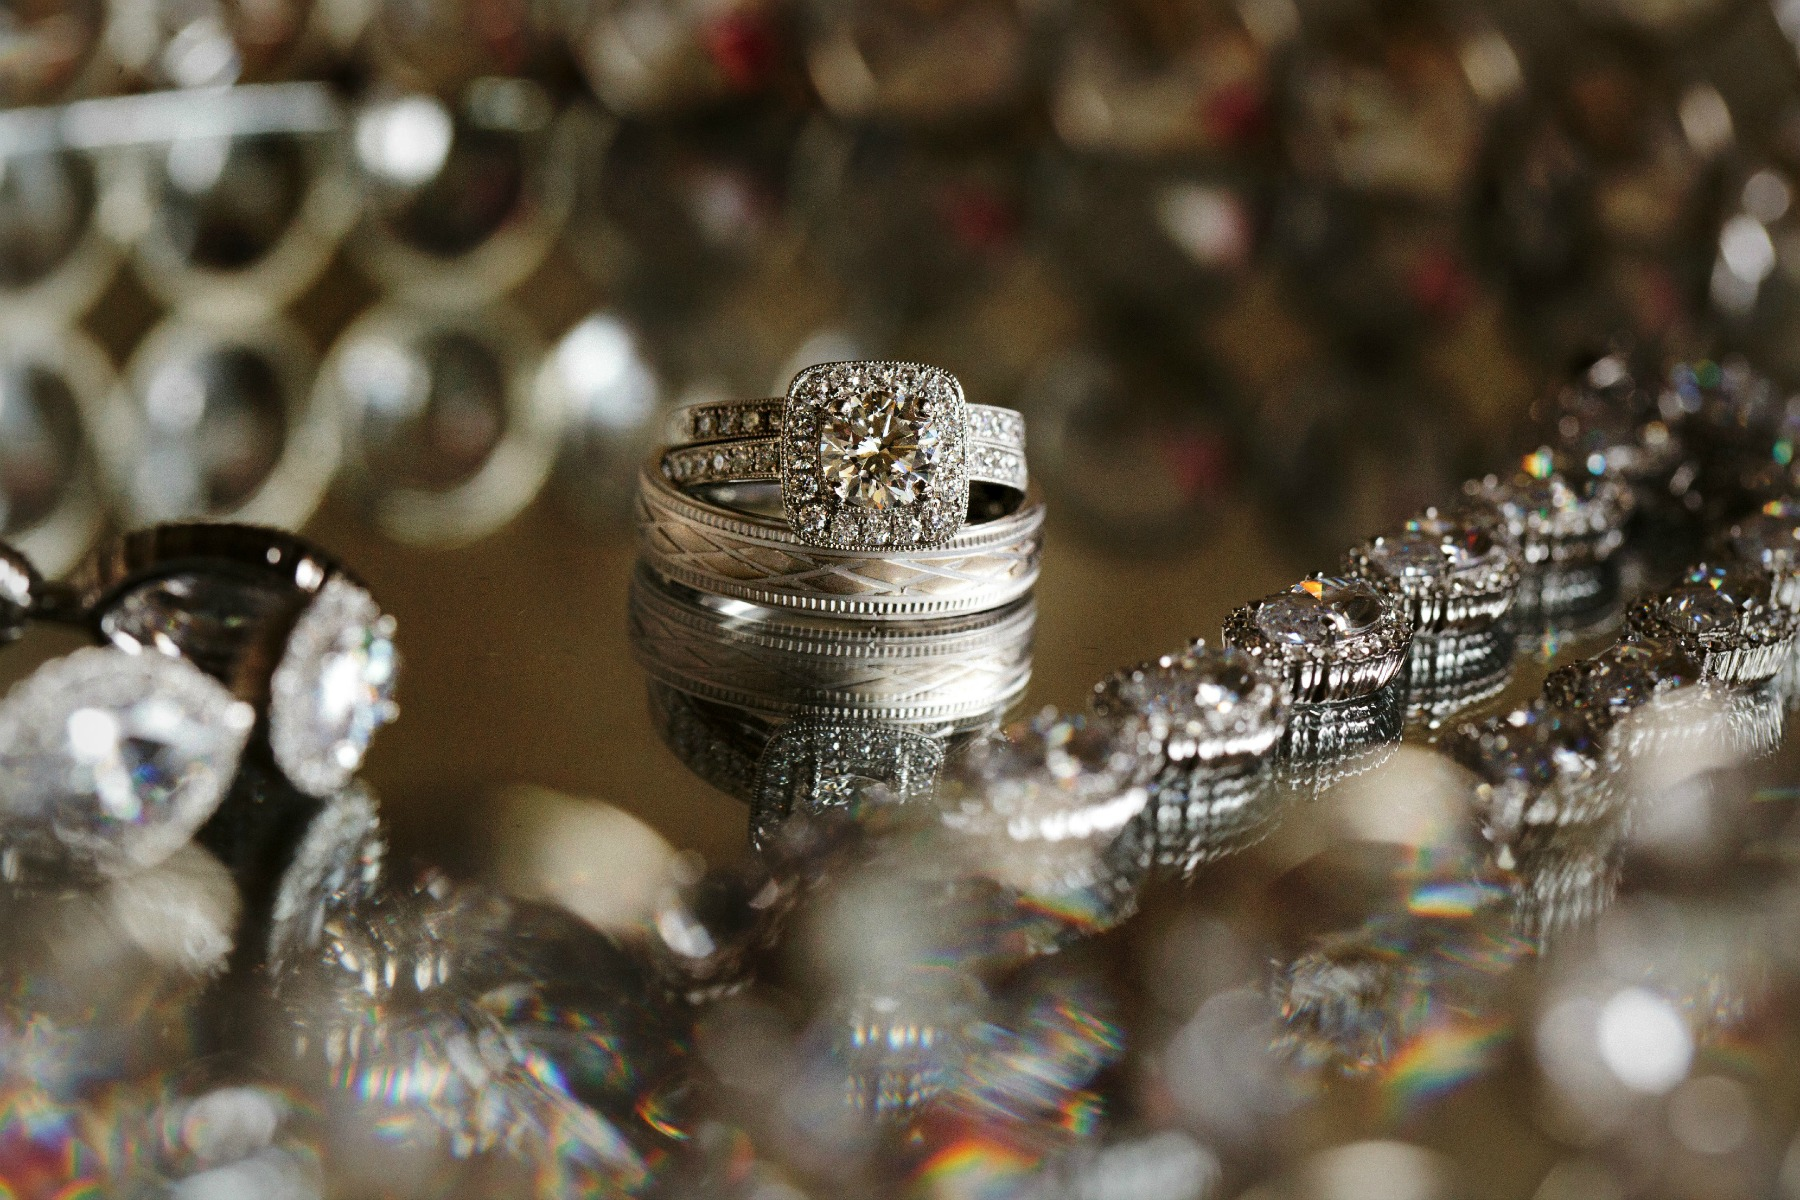 sparkling wedding jewelry displayed on a glass tray